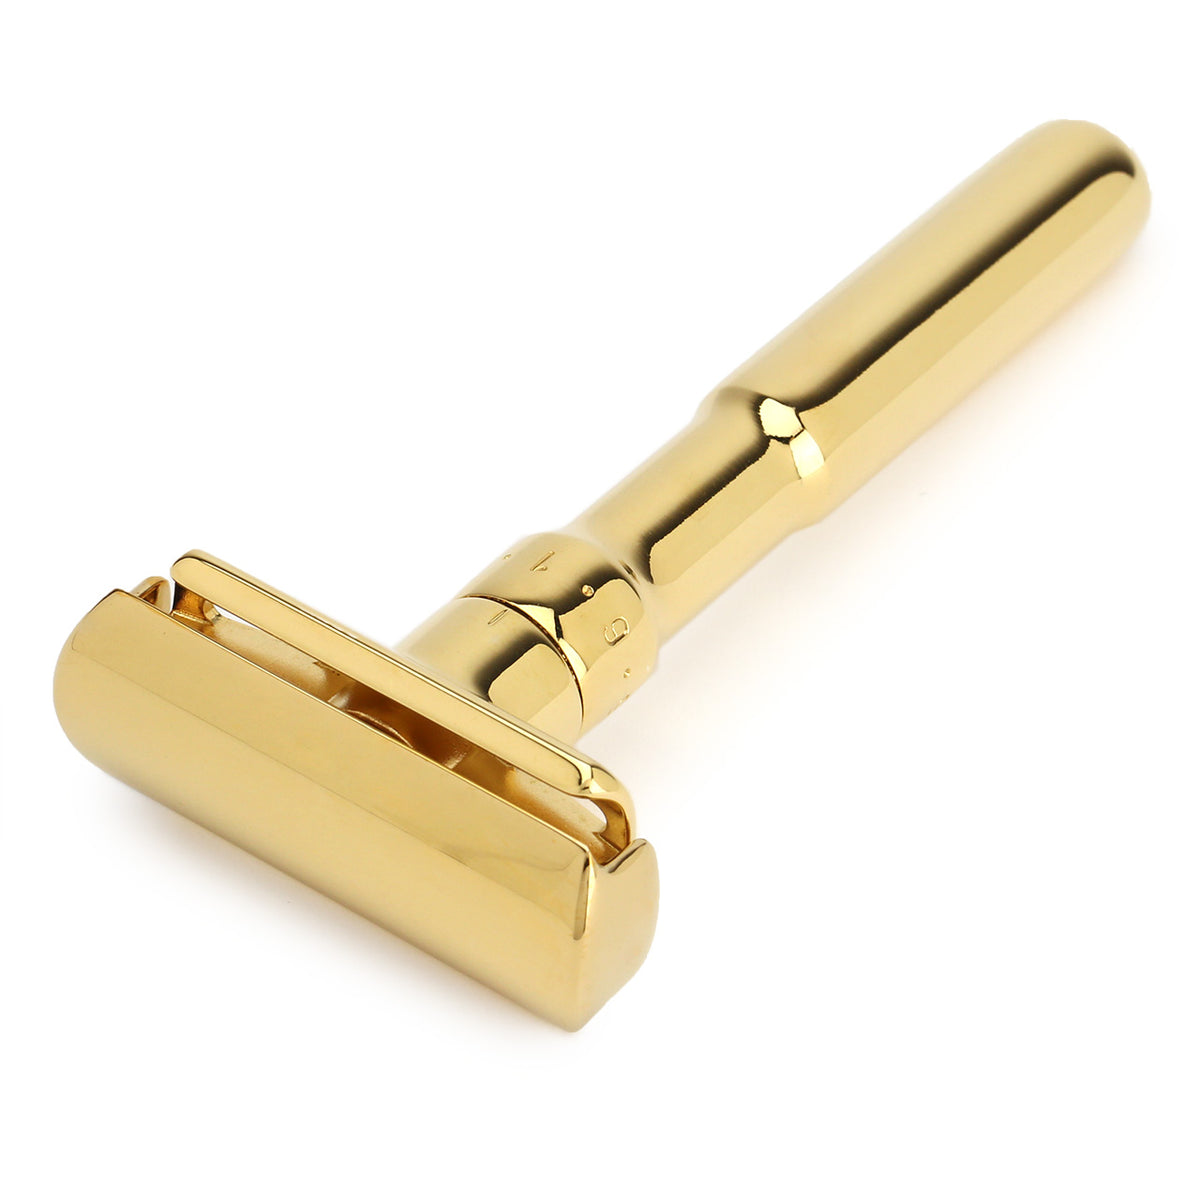 Merkur Futur, polished gold plated adjustable razor